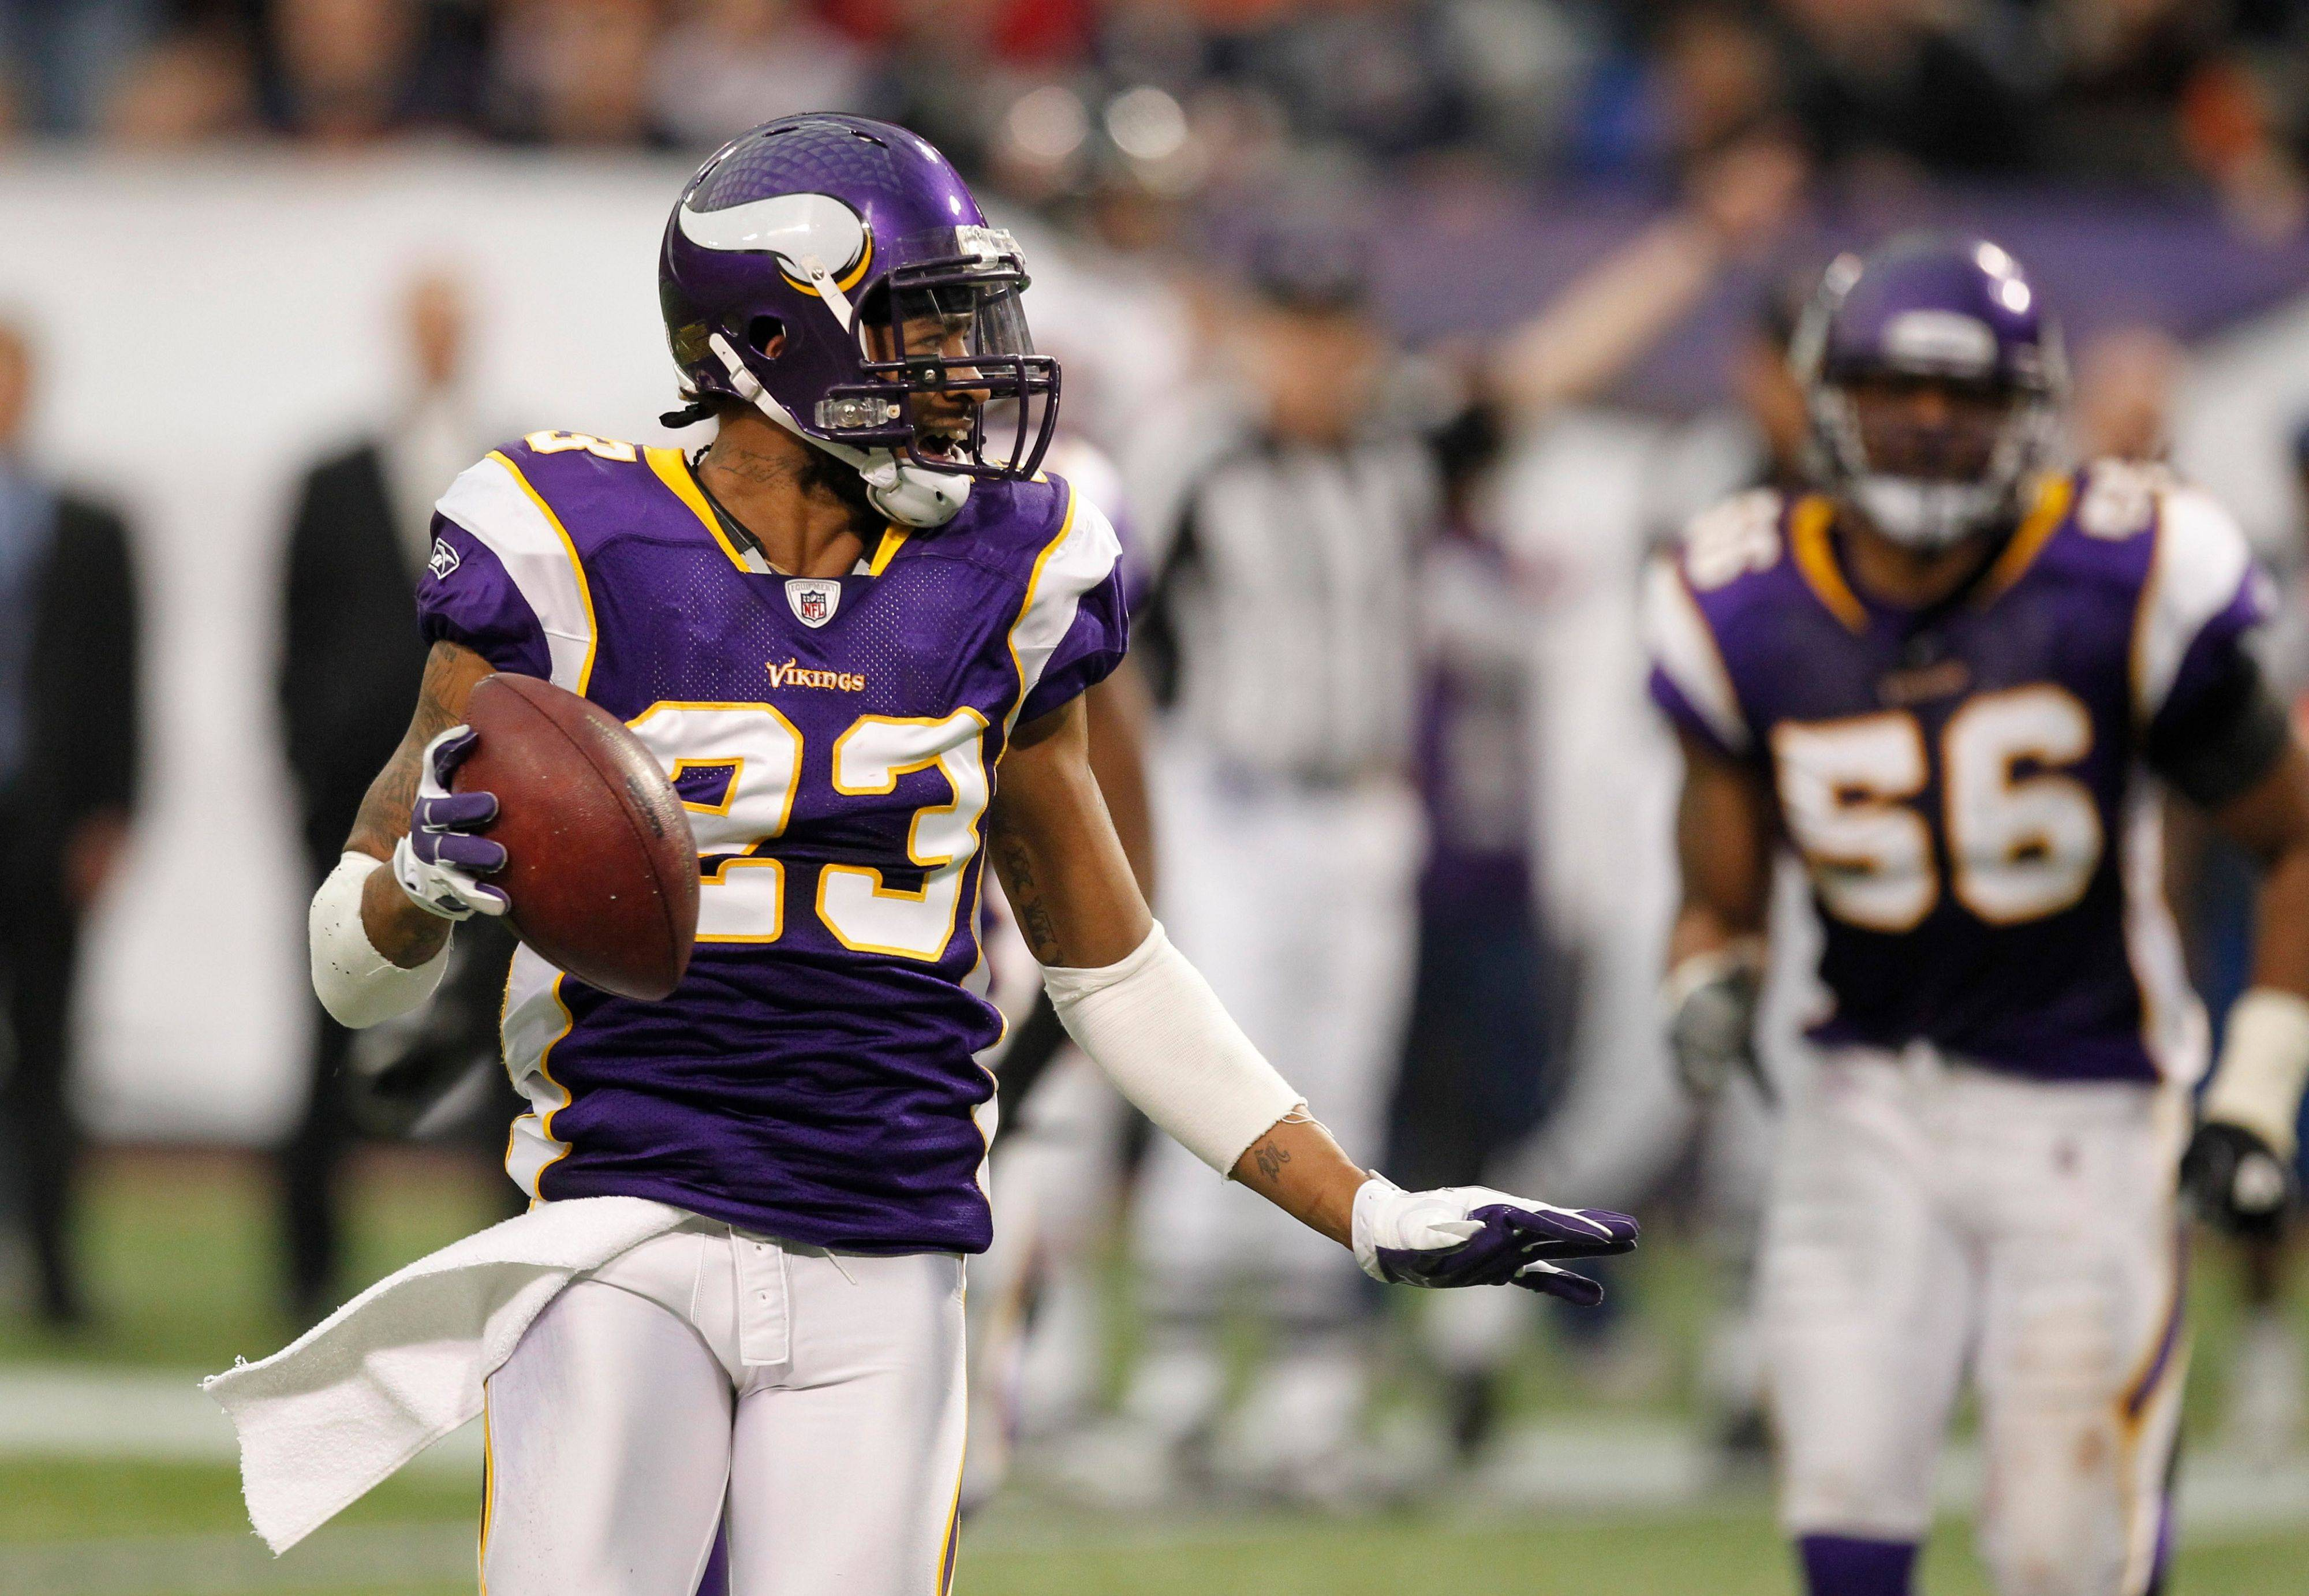 Minnesota Vikings cornerback Cedric Griffin celebrates after intercepting a pass in the second half.